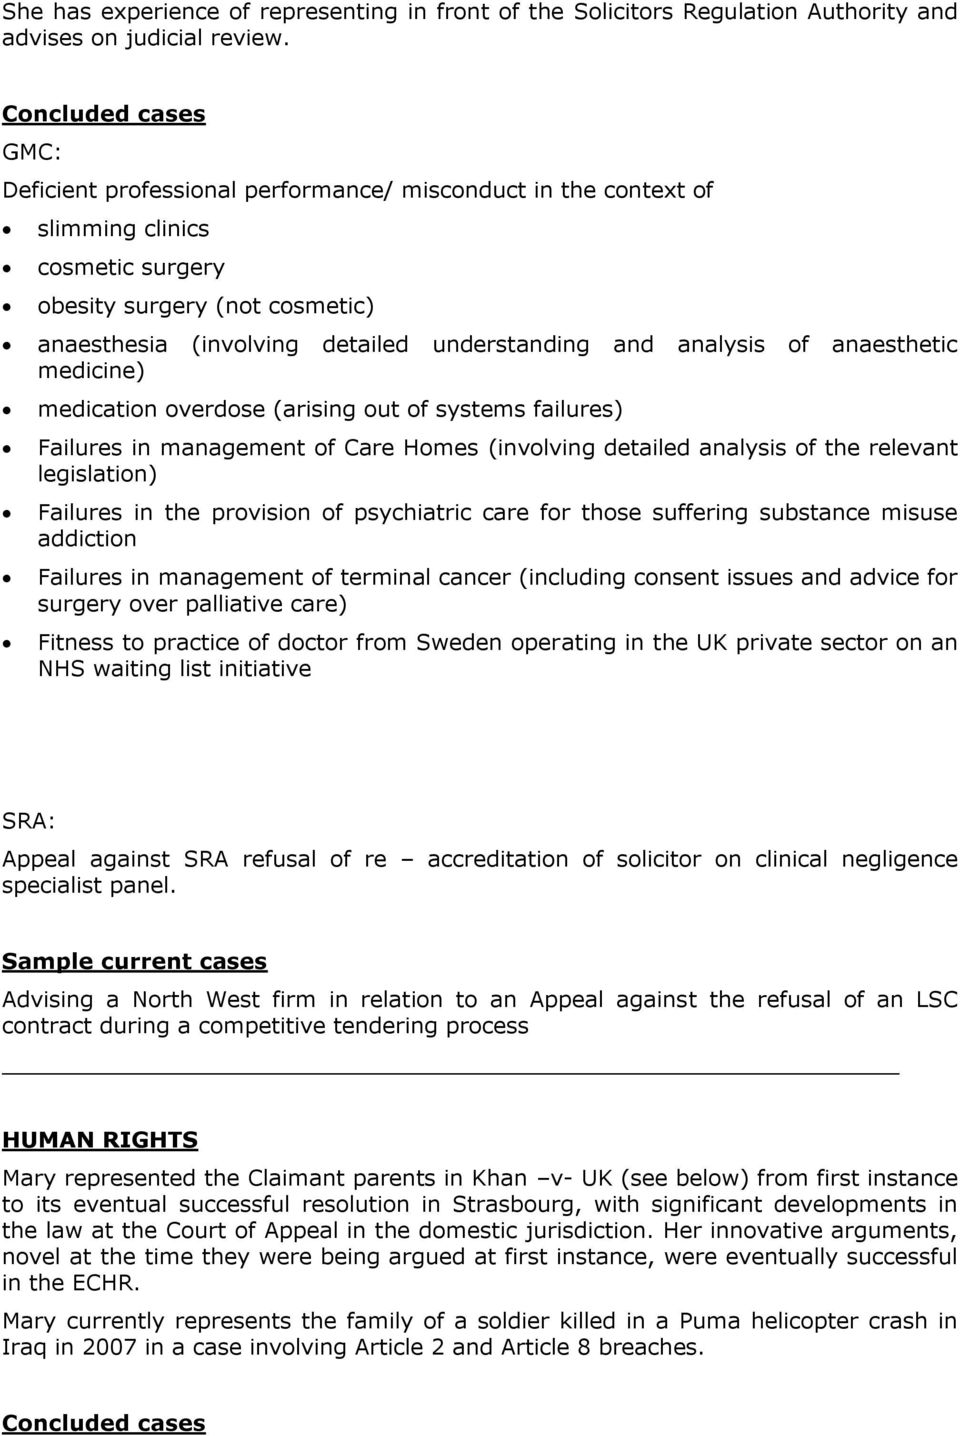 and analysis of anaesthetic medicine) medication overdose (arising out of systems failures) Failures in management of Care Homes (involving detailed analysis of the relevant legislation) Failures in